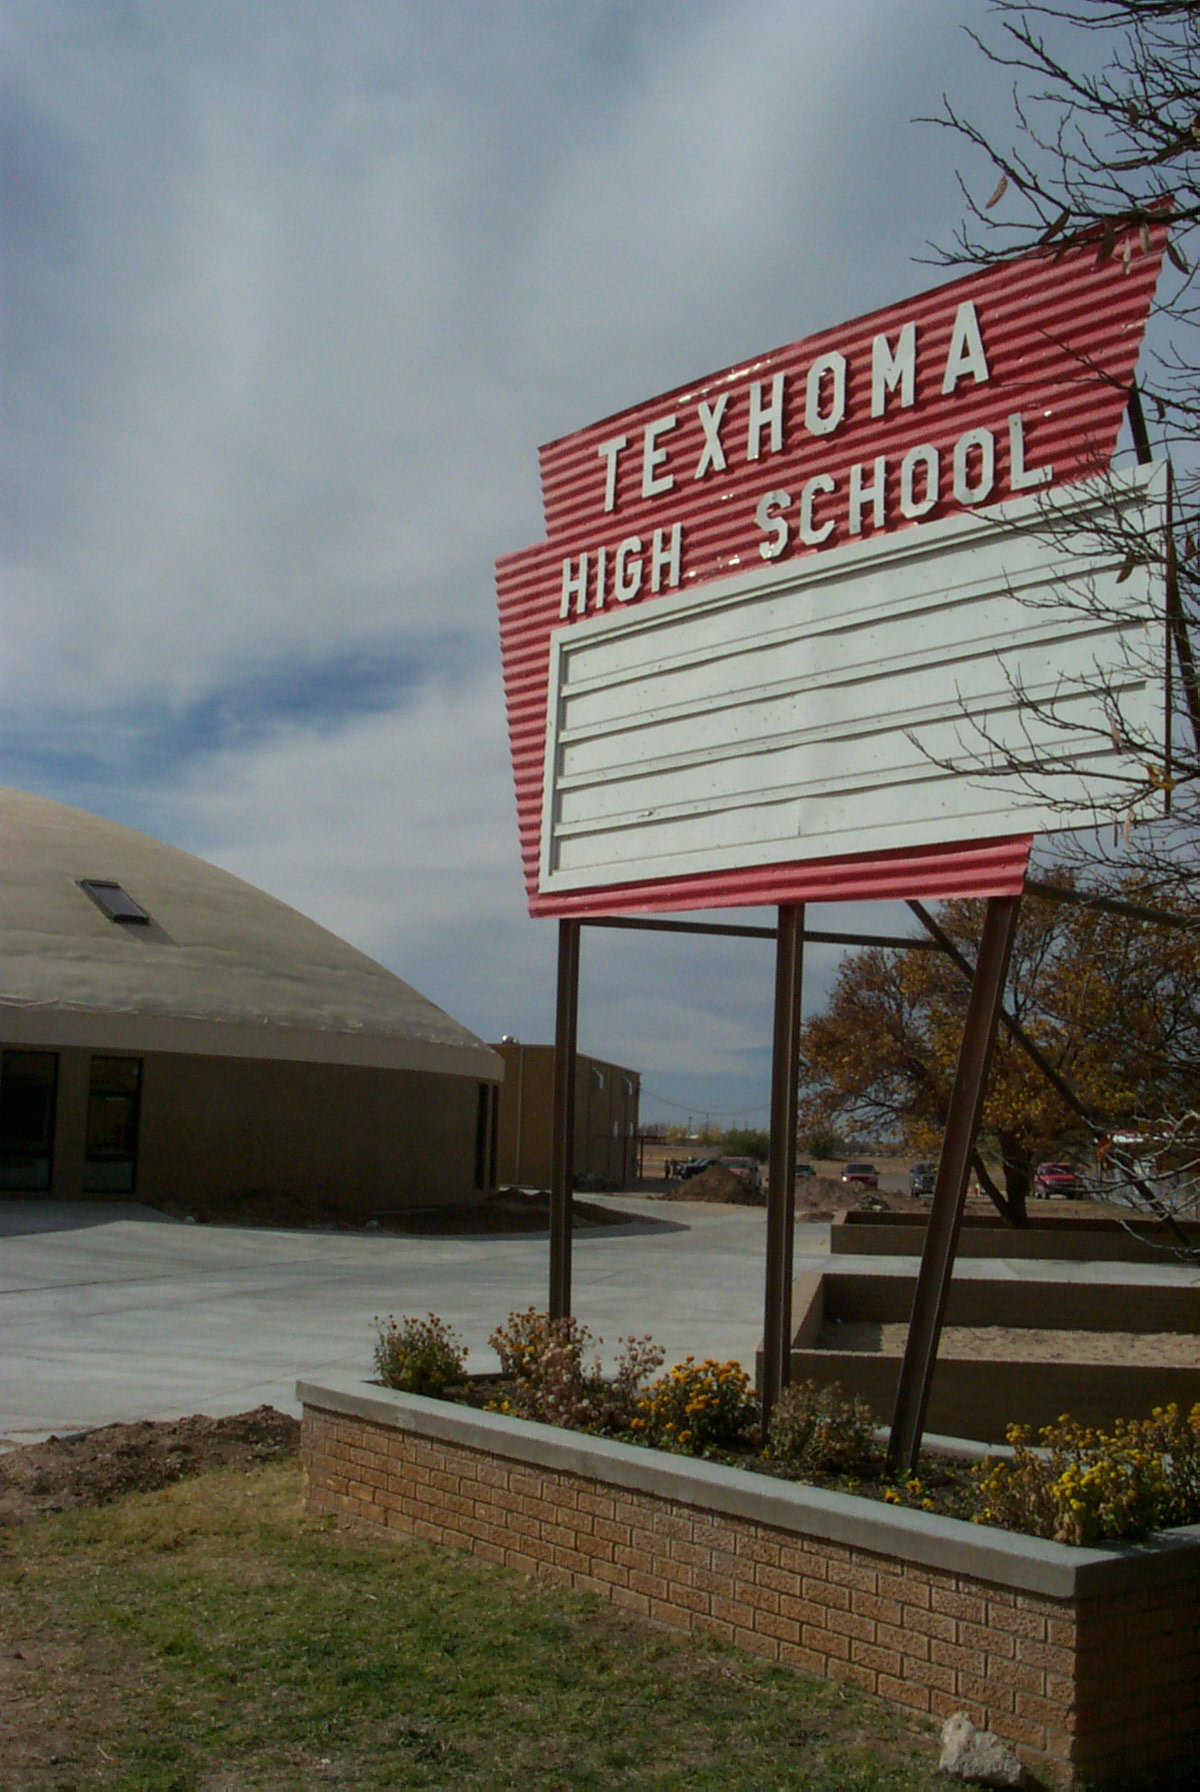 Texhoma School District — It serves approximately 500 students, in prekindergarten through grade 12, and now has a new Monolithic Dome facility for students in grades 5 through 12.